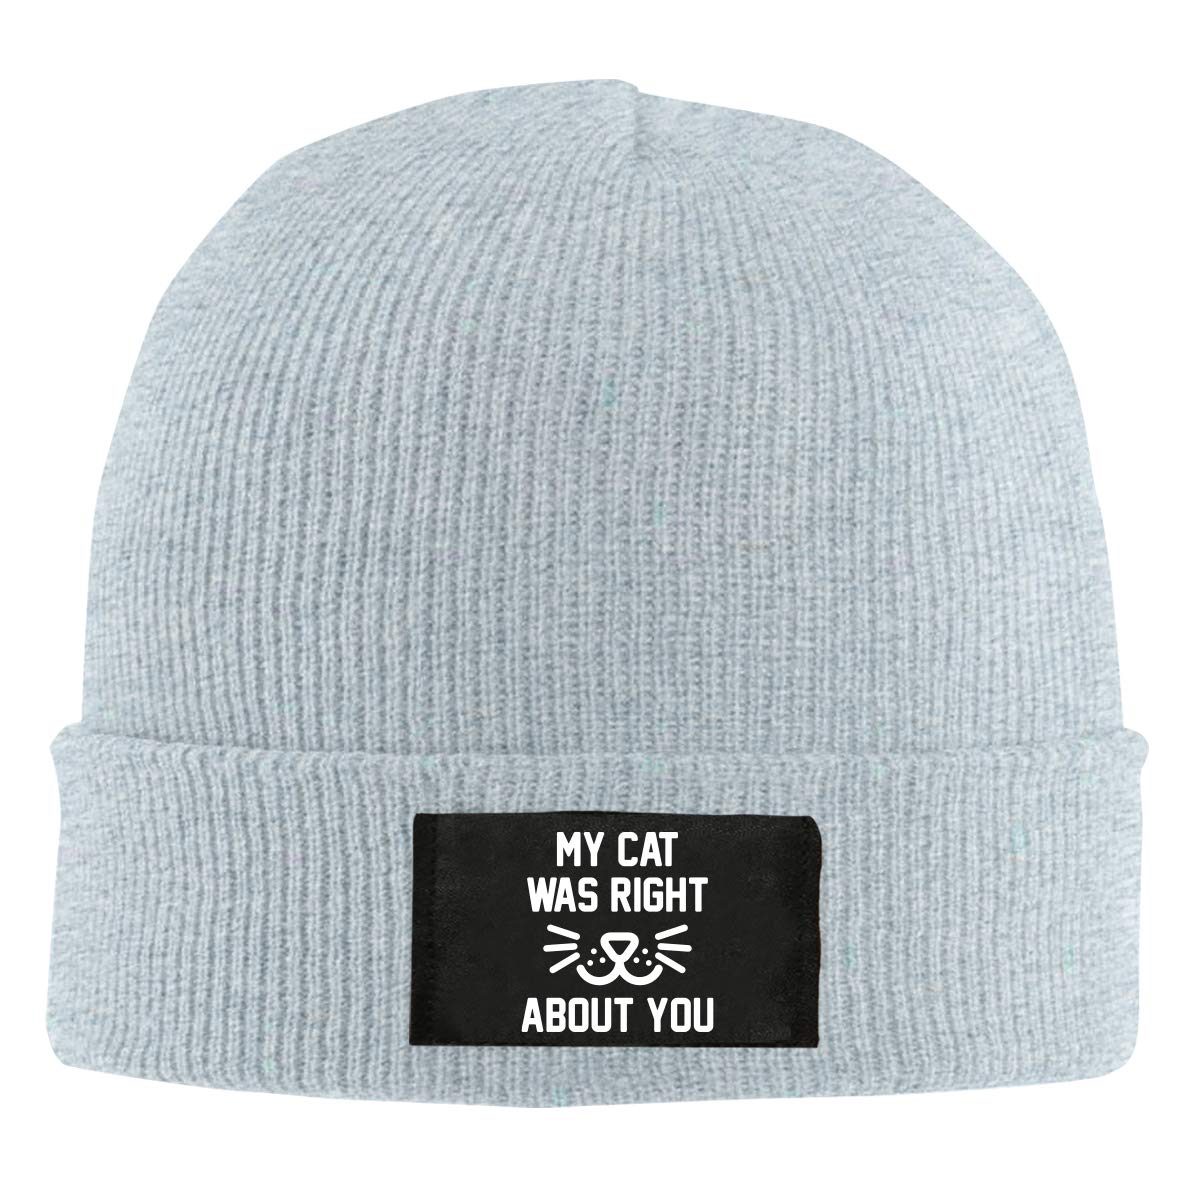 My Cat was Right 0 Men Women Knitted Hat Winter Warm Beanie Cap